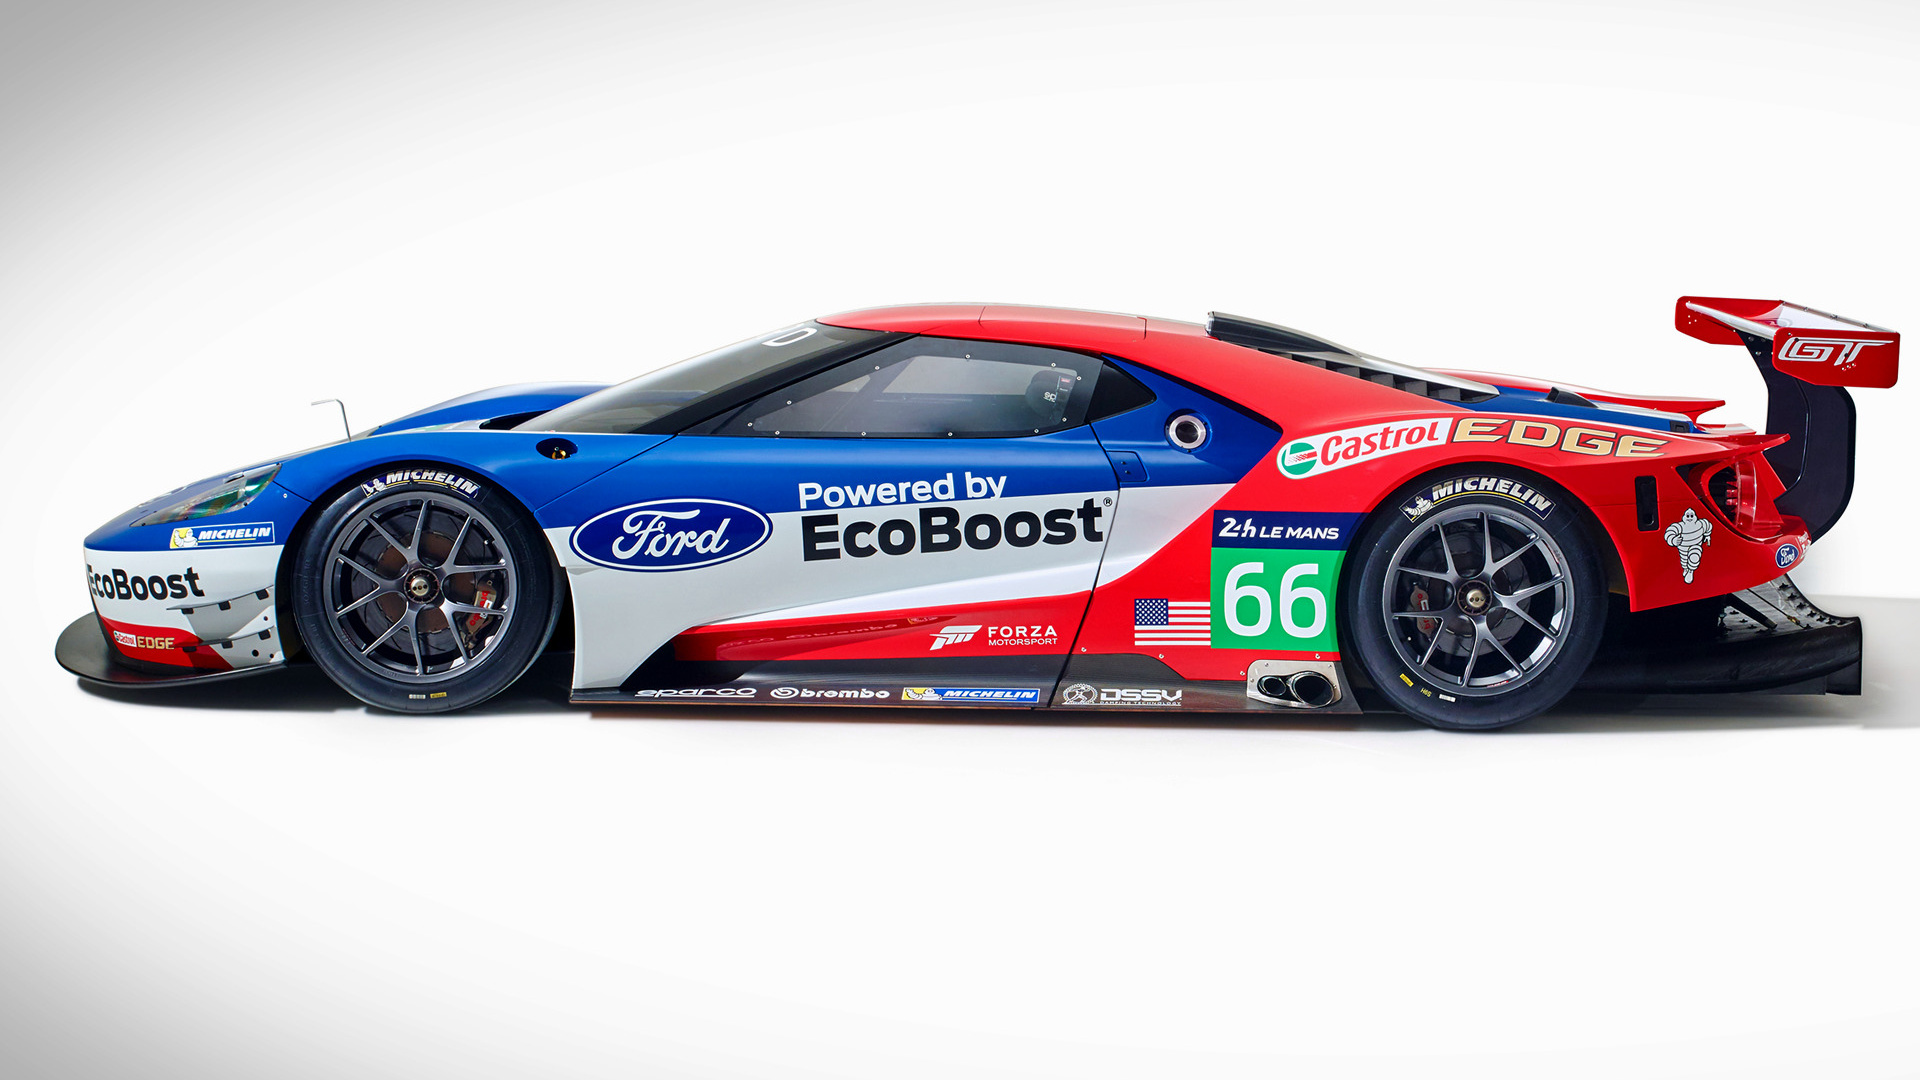 Heritage Volkswagen Subaru >> 2016 Ford GT Race Car - Wallpapers and HD Images | Car Pixel